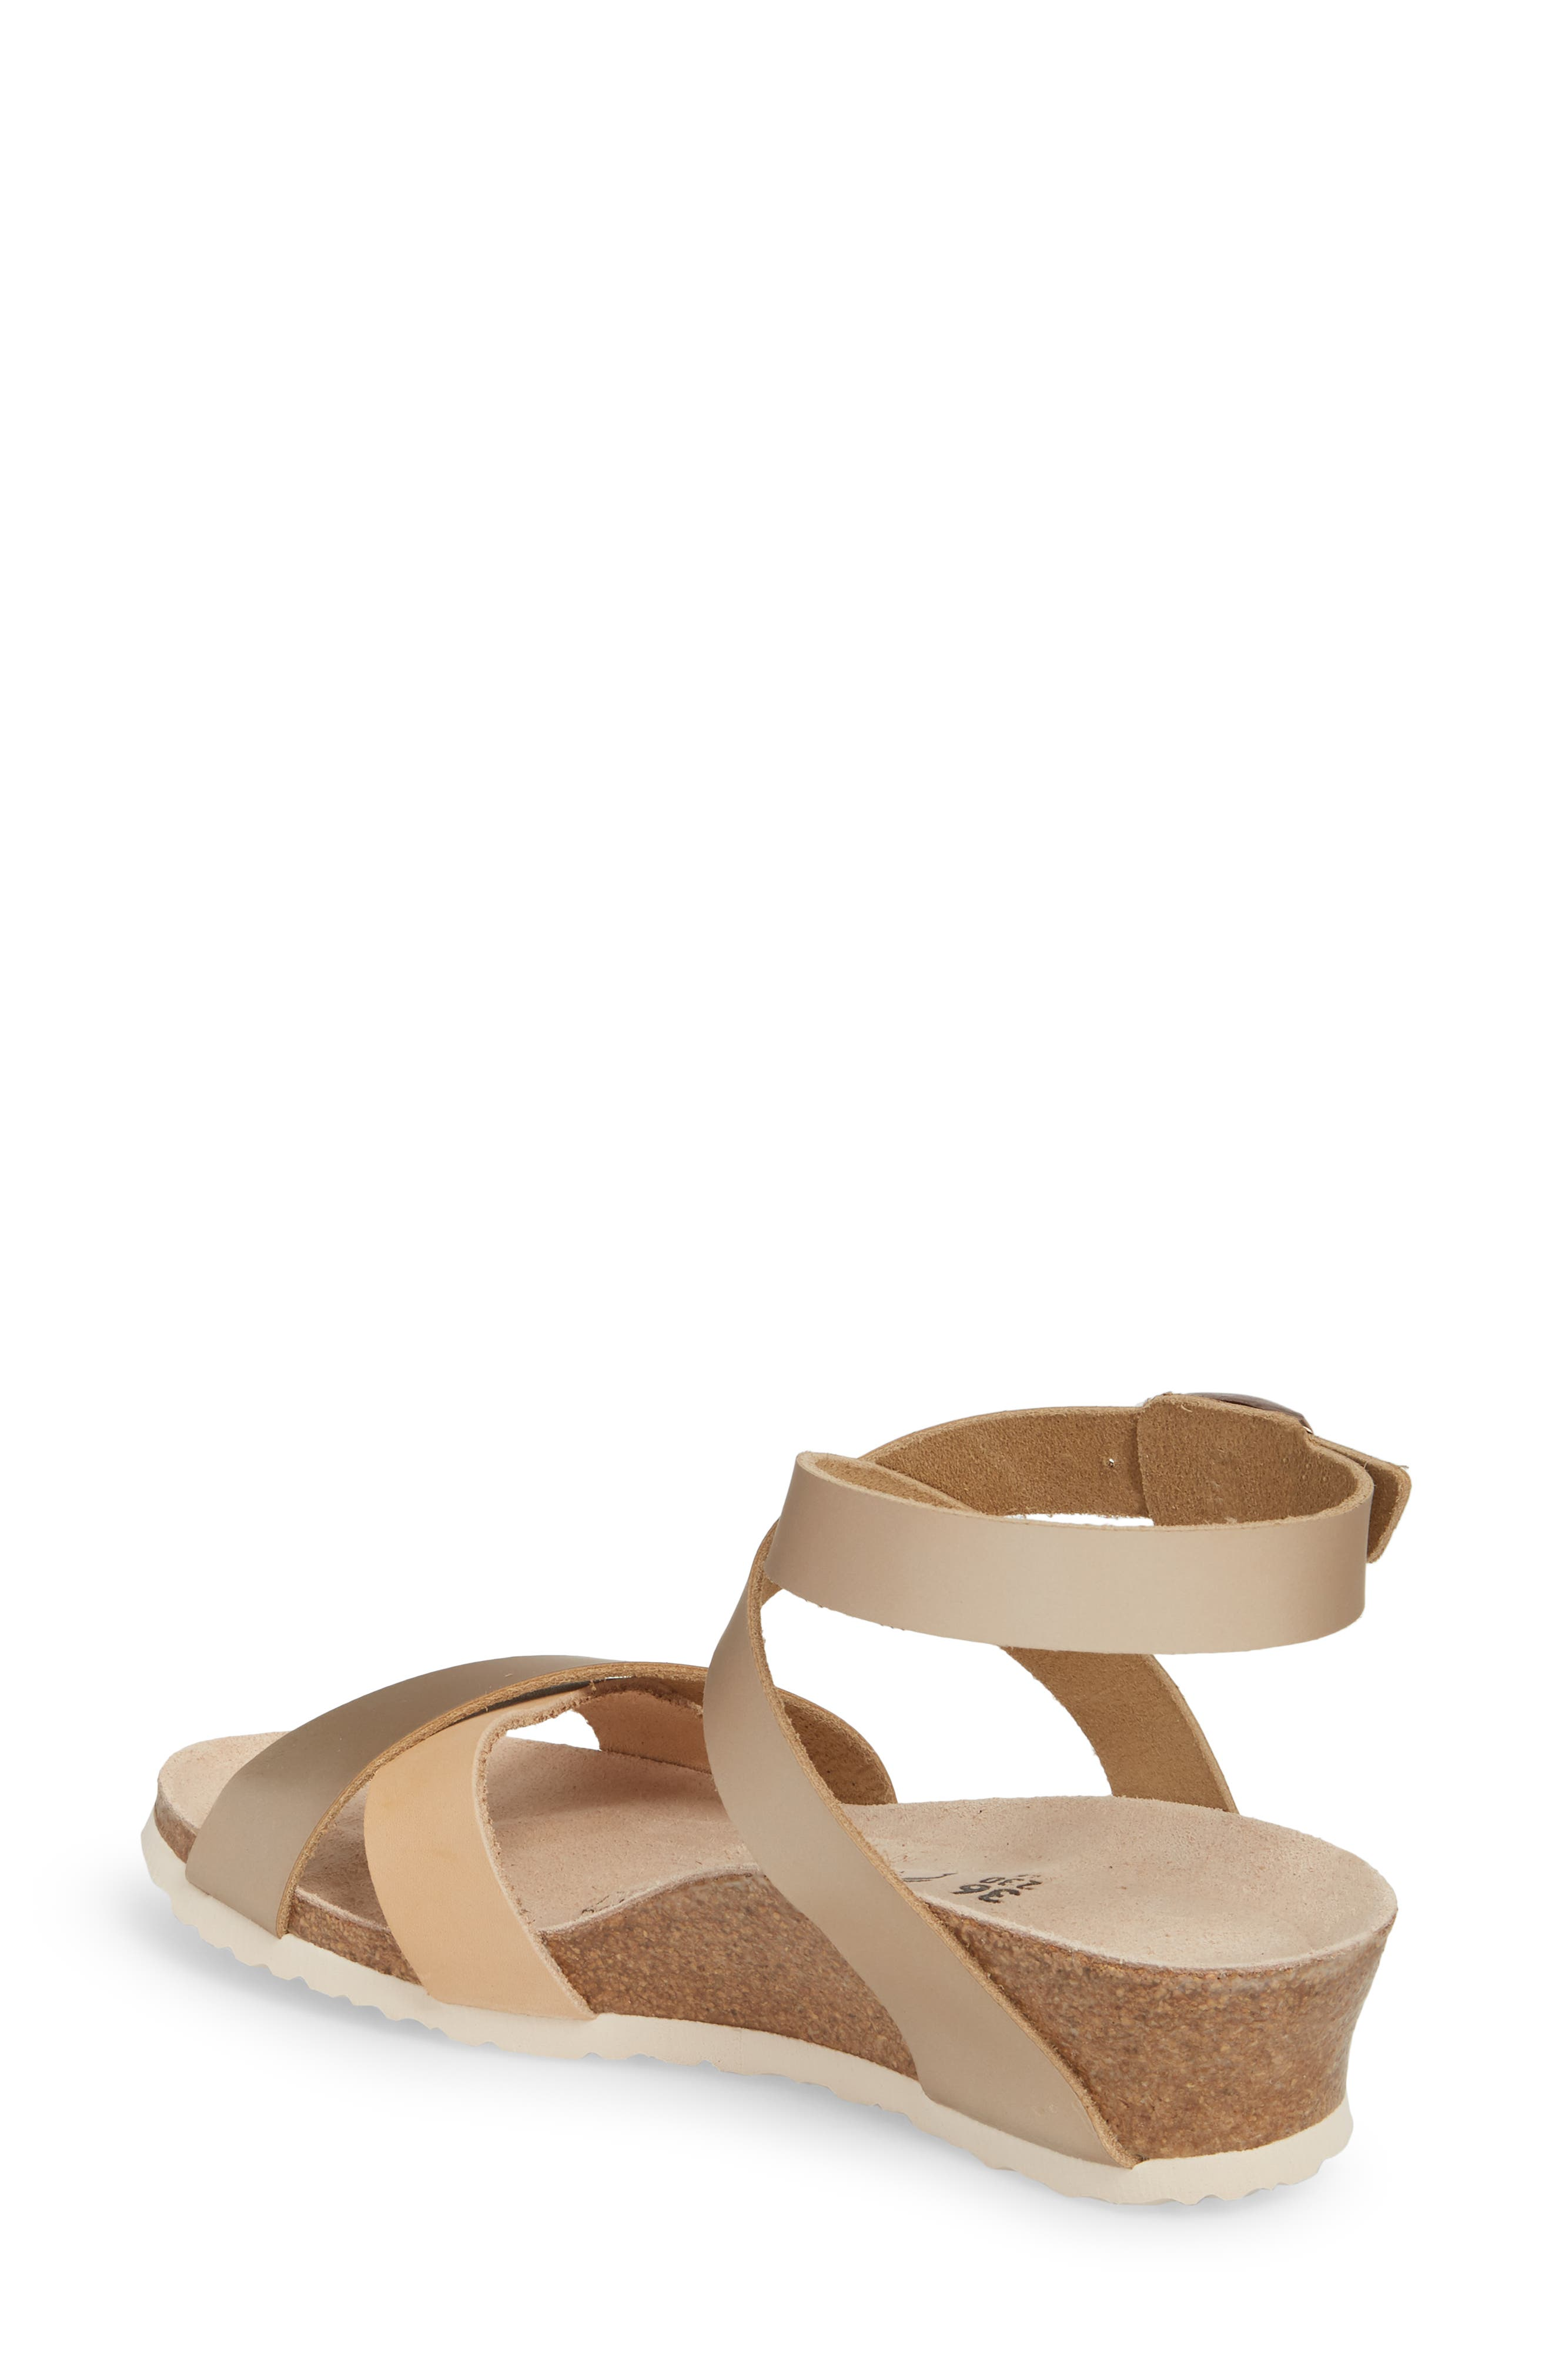 Papillio by Birkenstock Lola Wedge Sandal,                             Alternate thumbnail 2, color,                             Frosted Metallic Rose